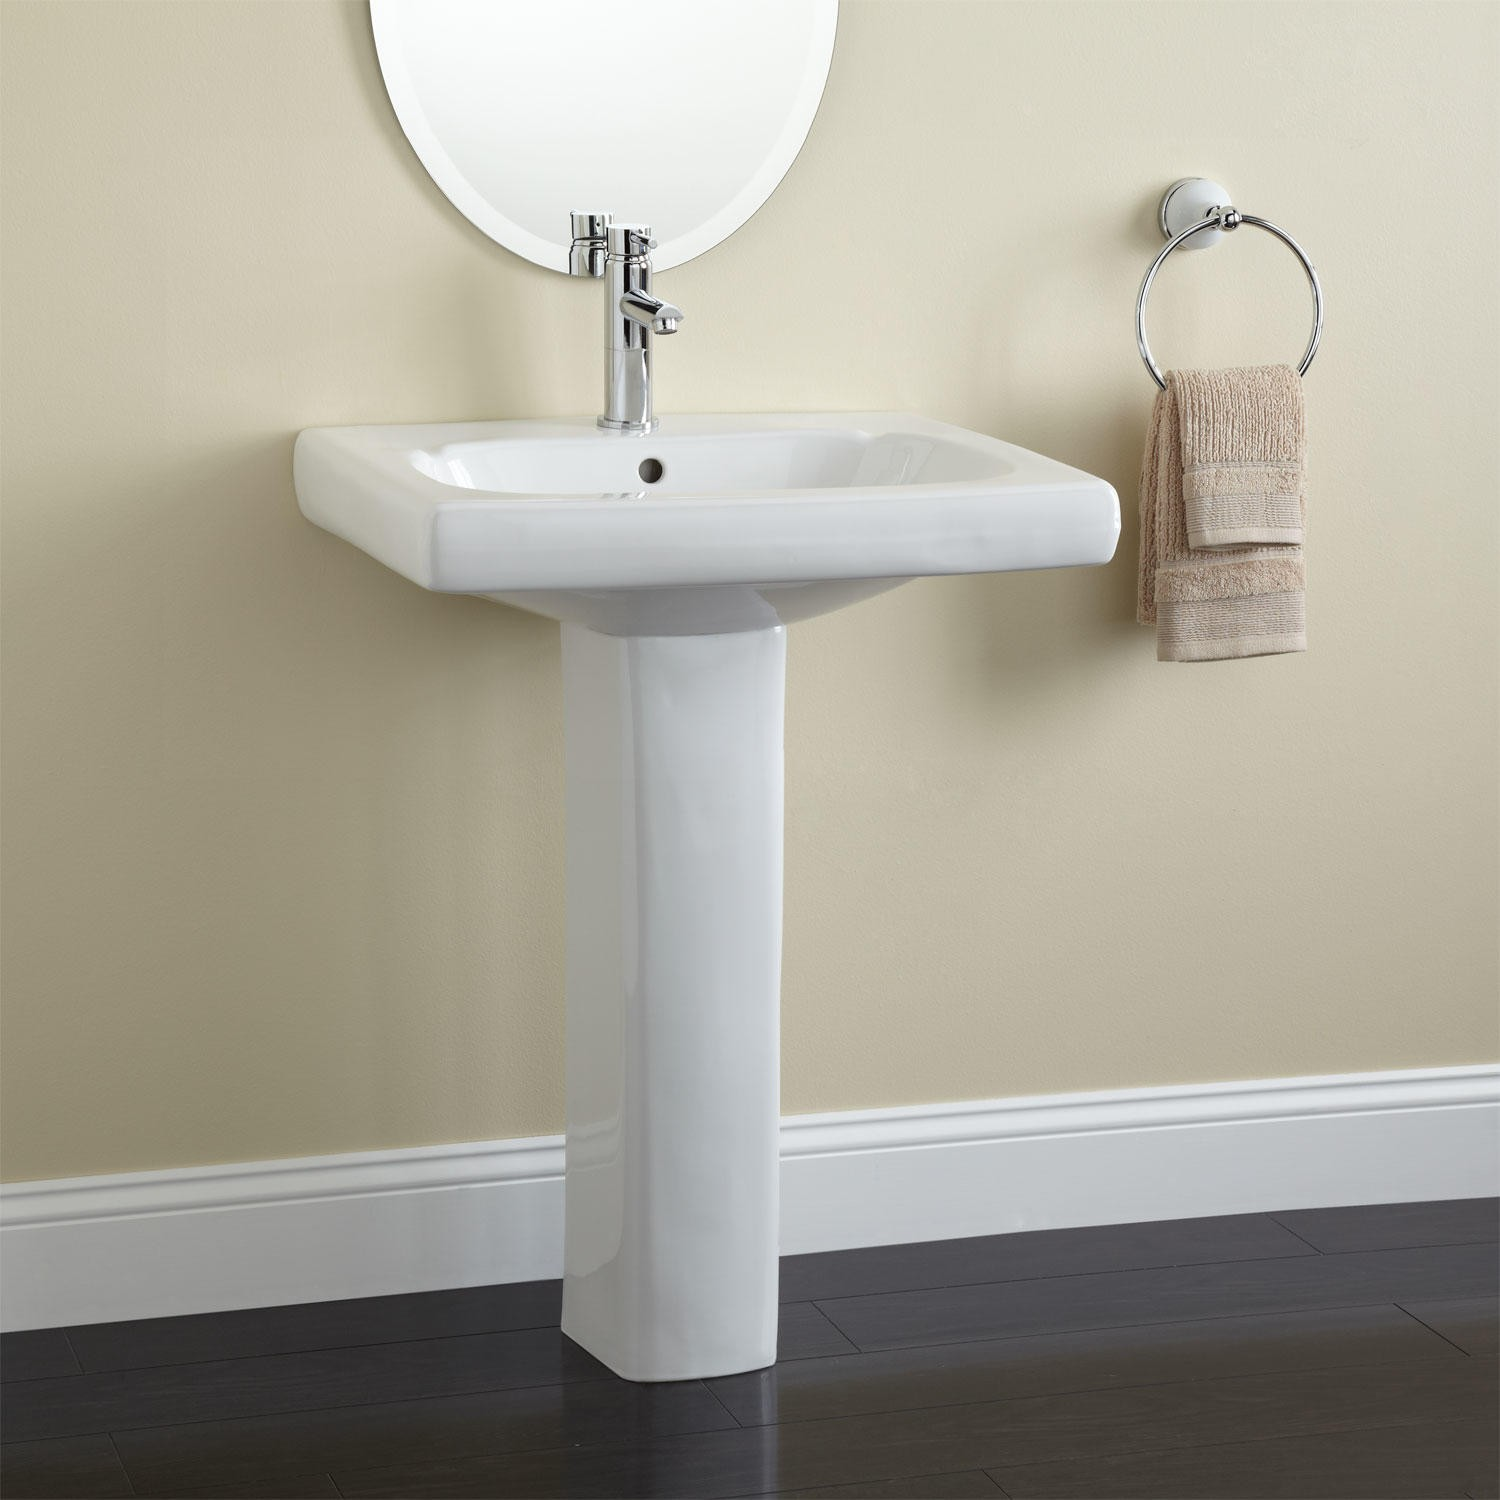 narrow barclay lowes china at vitreous shop pedestal com sinks stanford pl sink bathroom